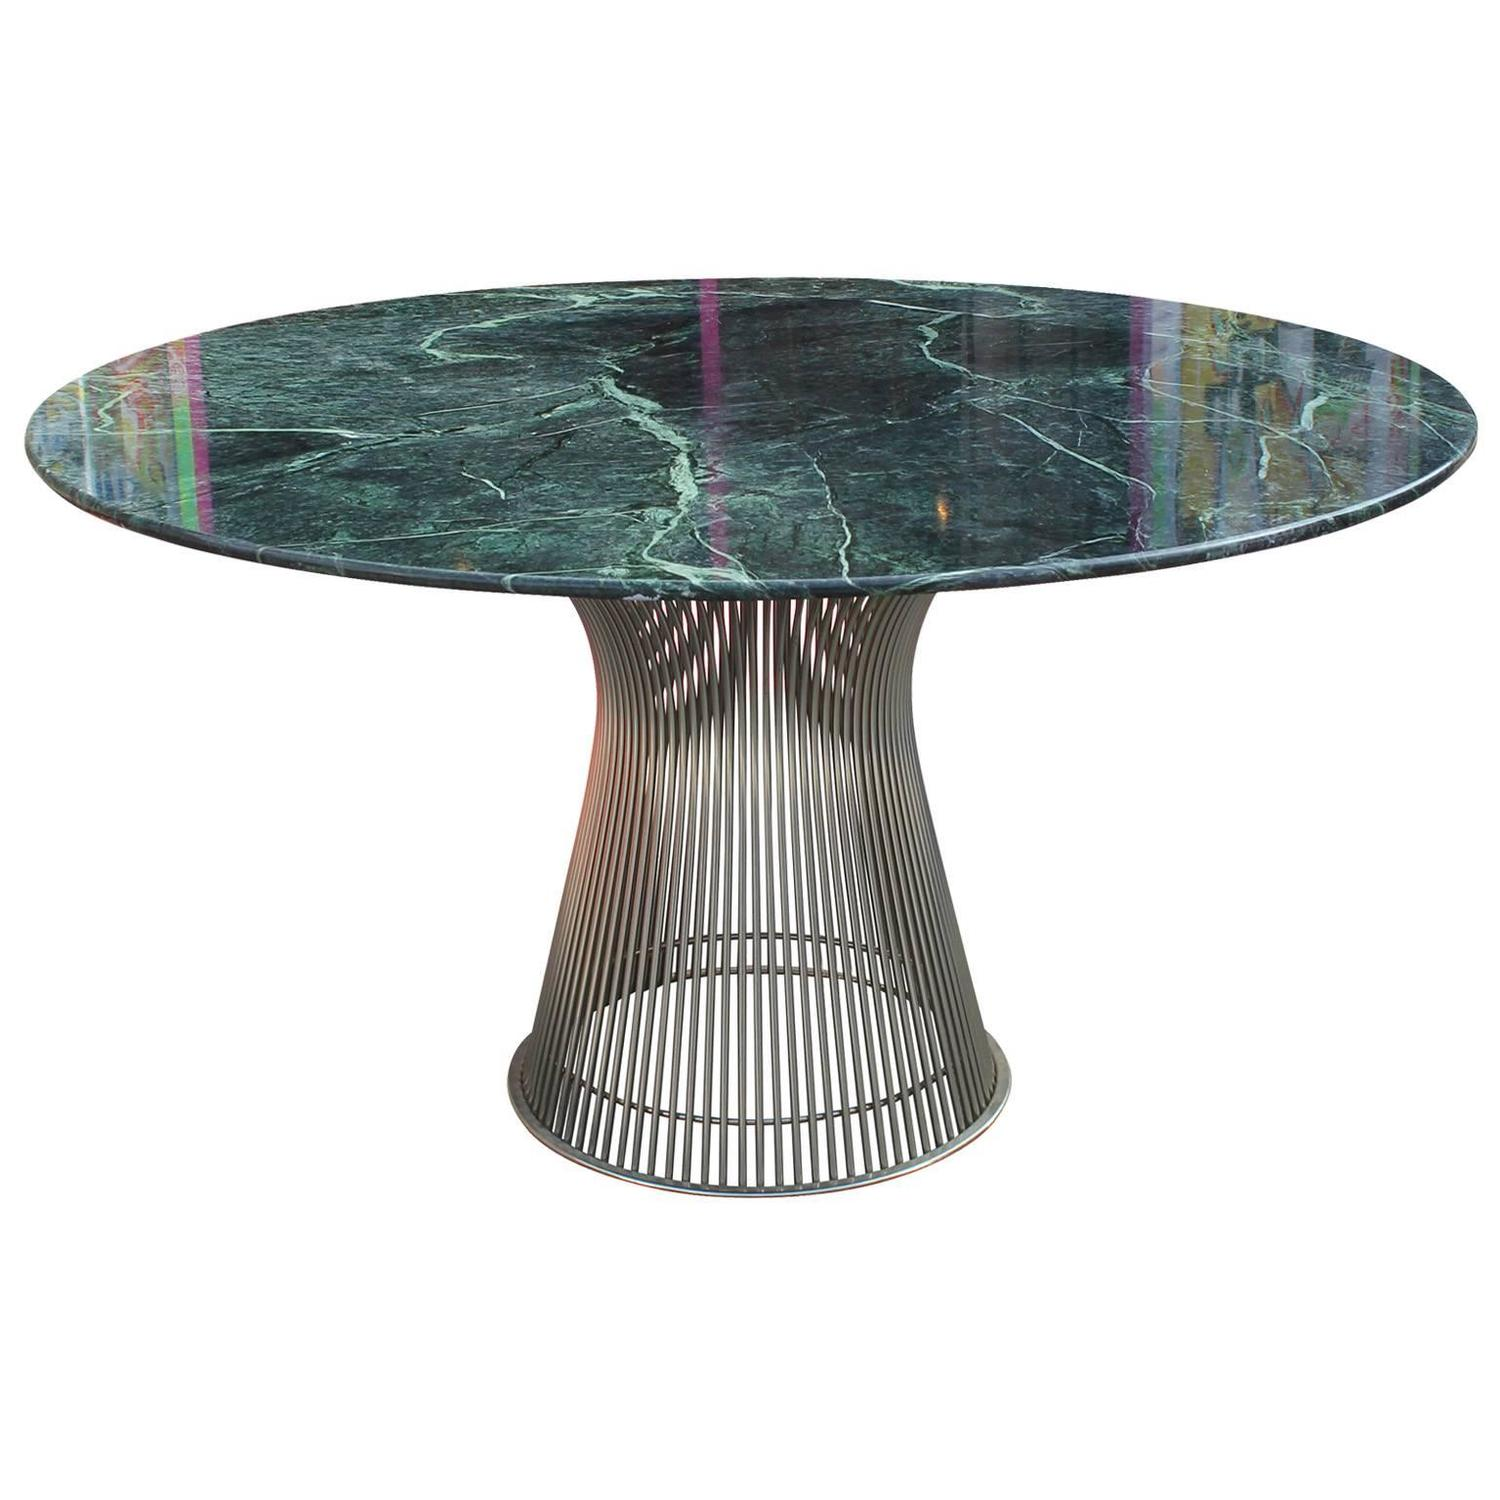 Marble Coffee Table Houston: Iconic Warren Platner Dining Table With Green Marble Top